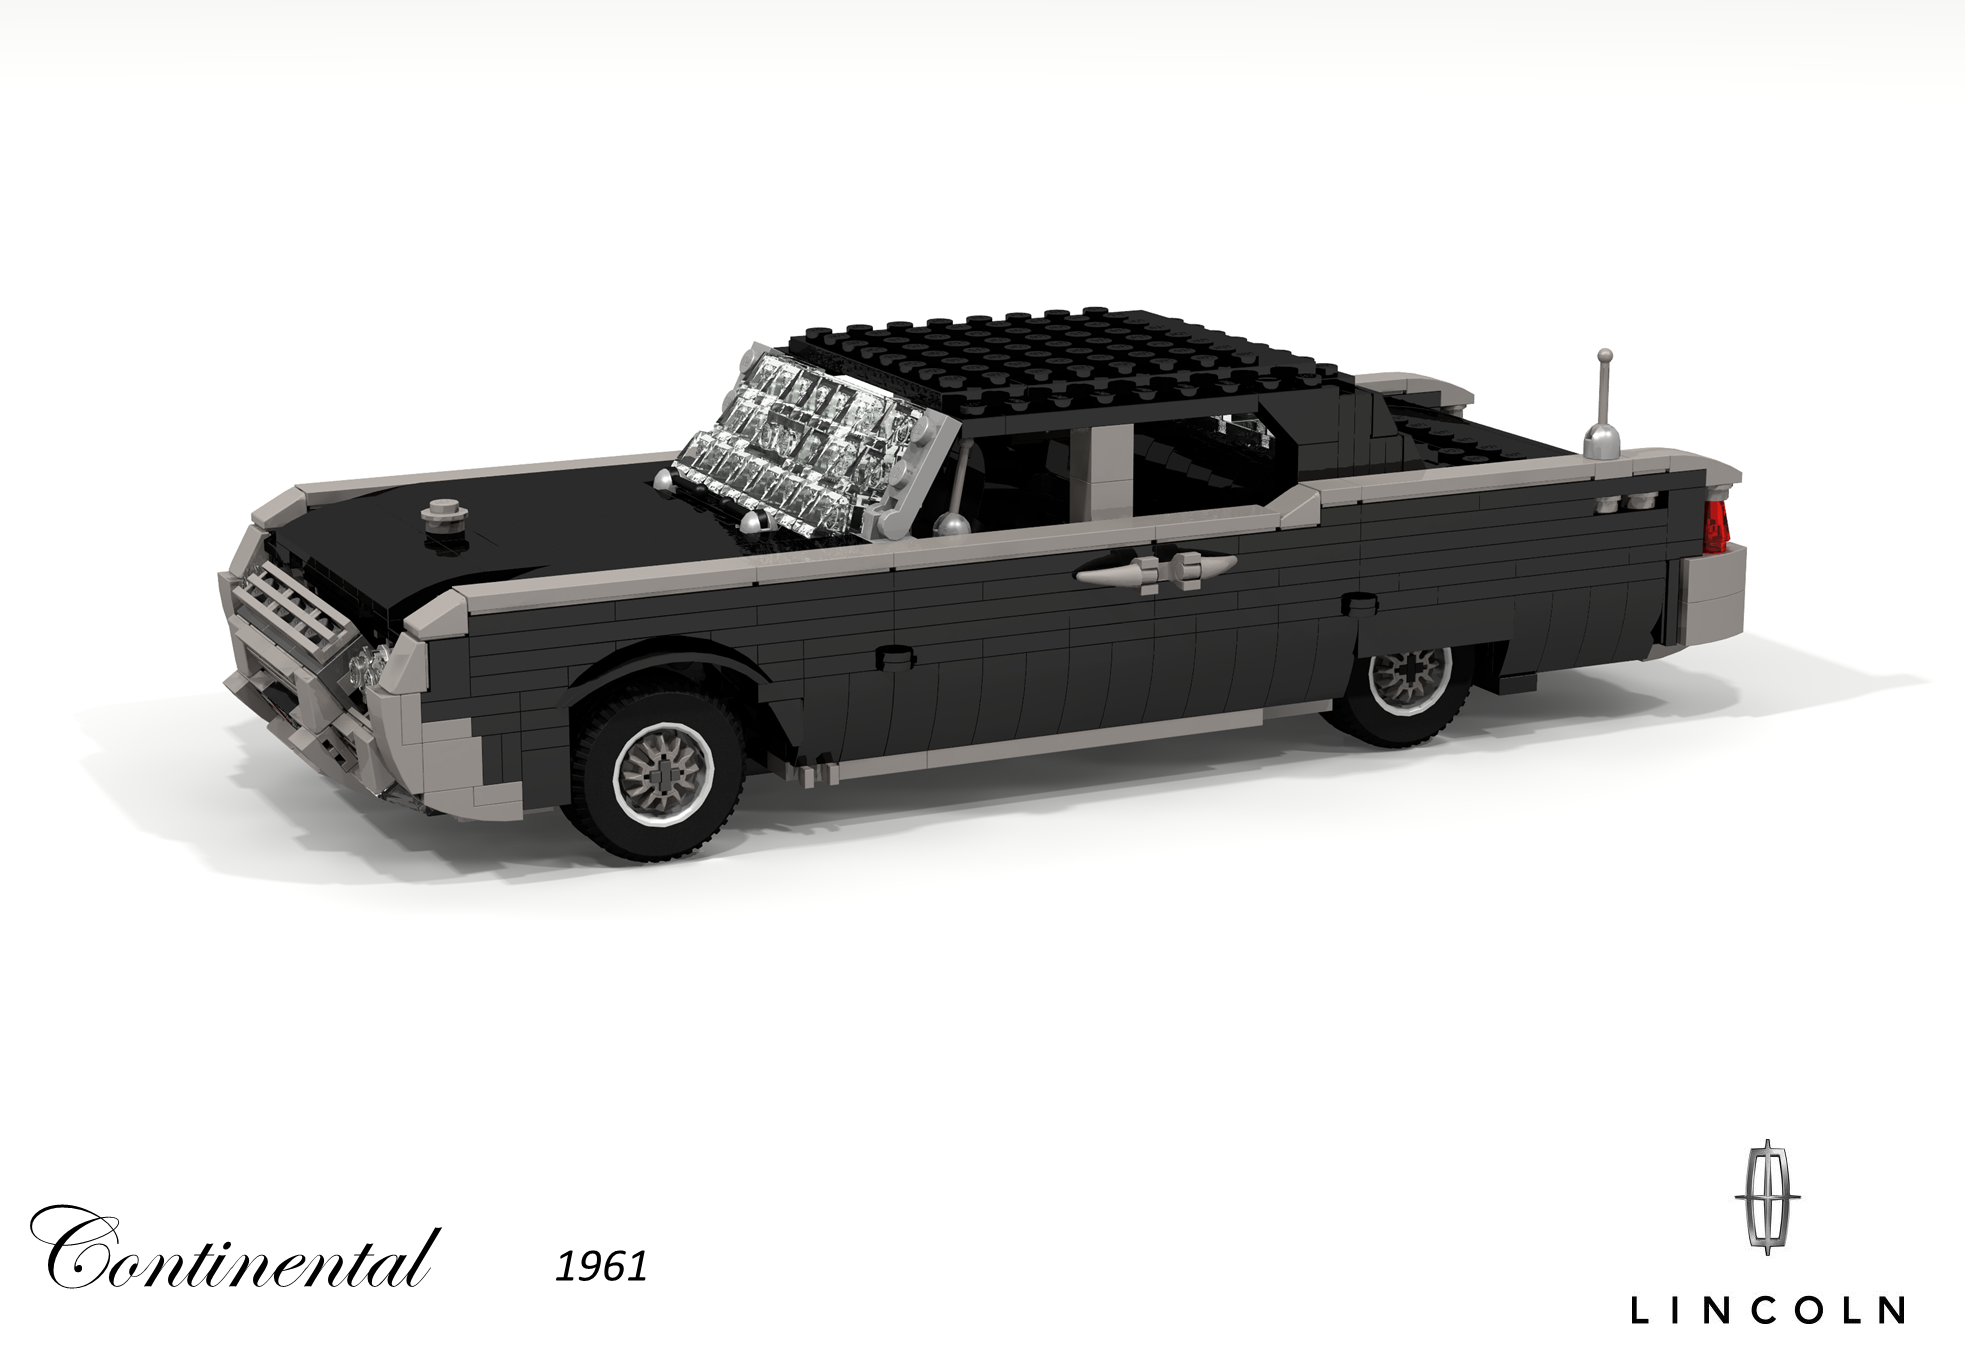 lincoln_1961_continental_08.png